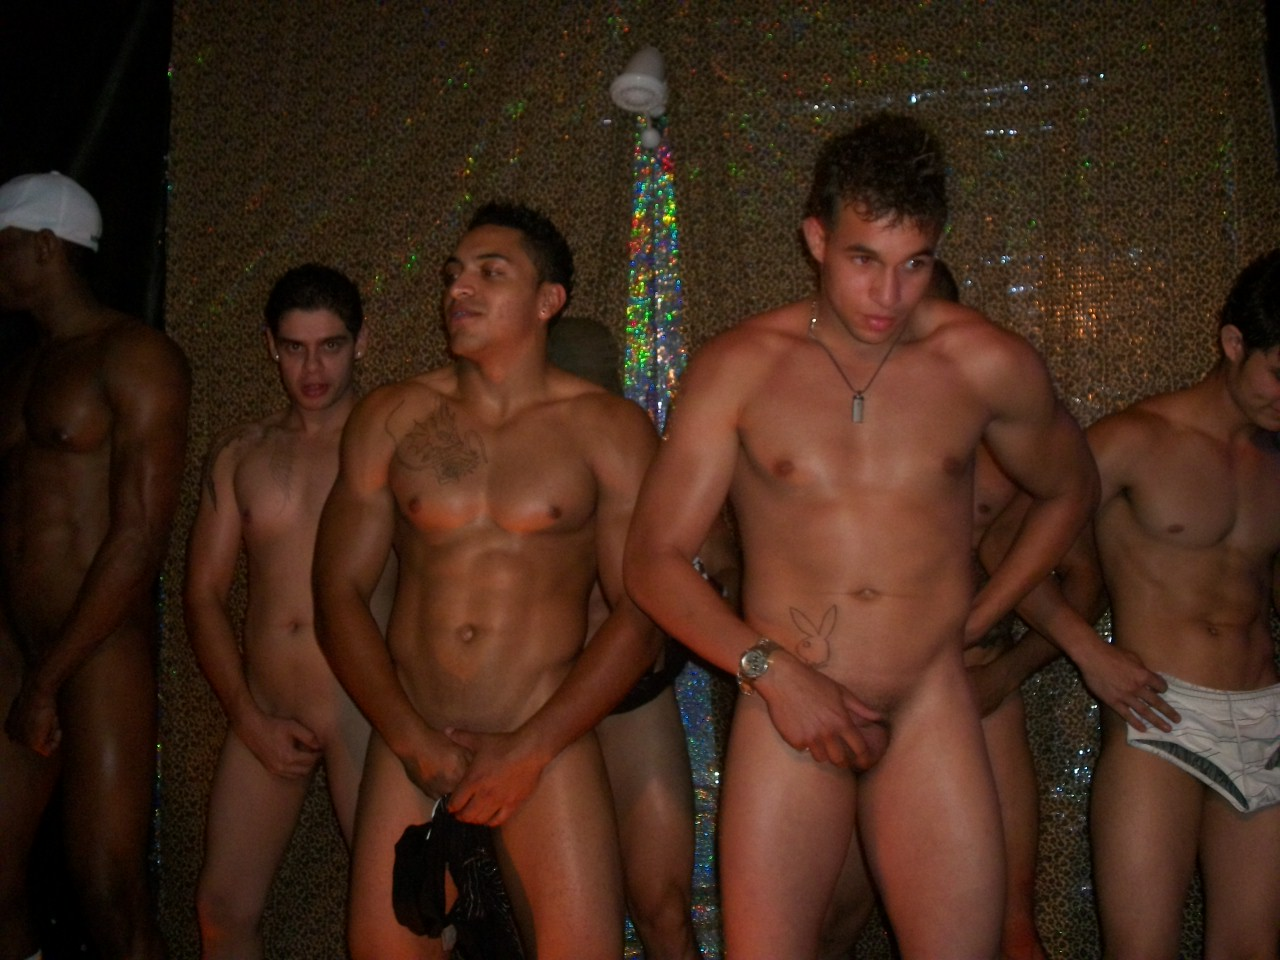 Male fully nude strip club